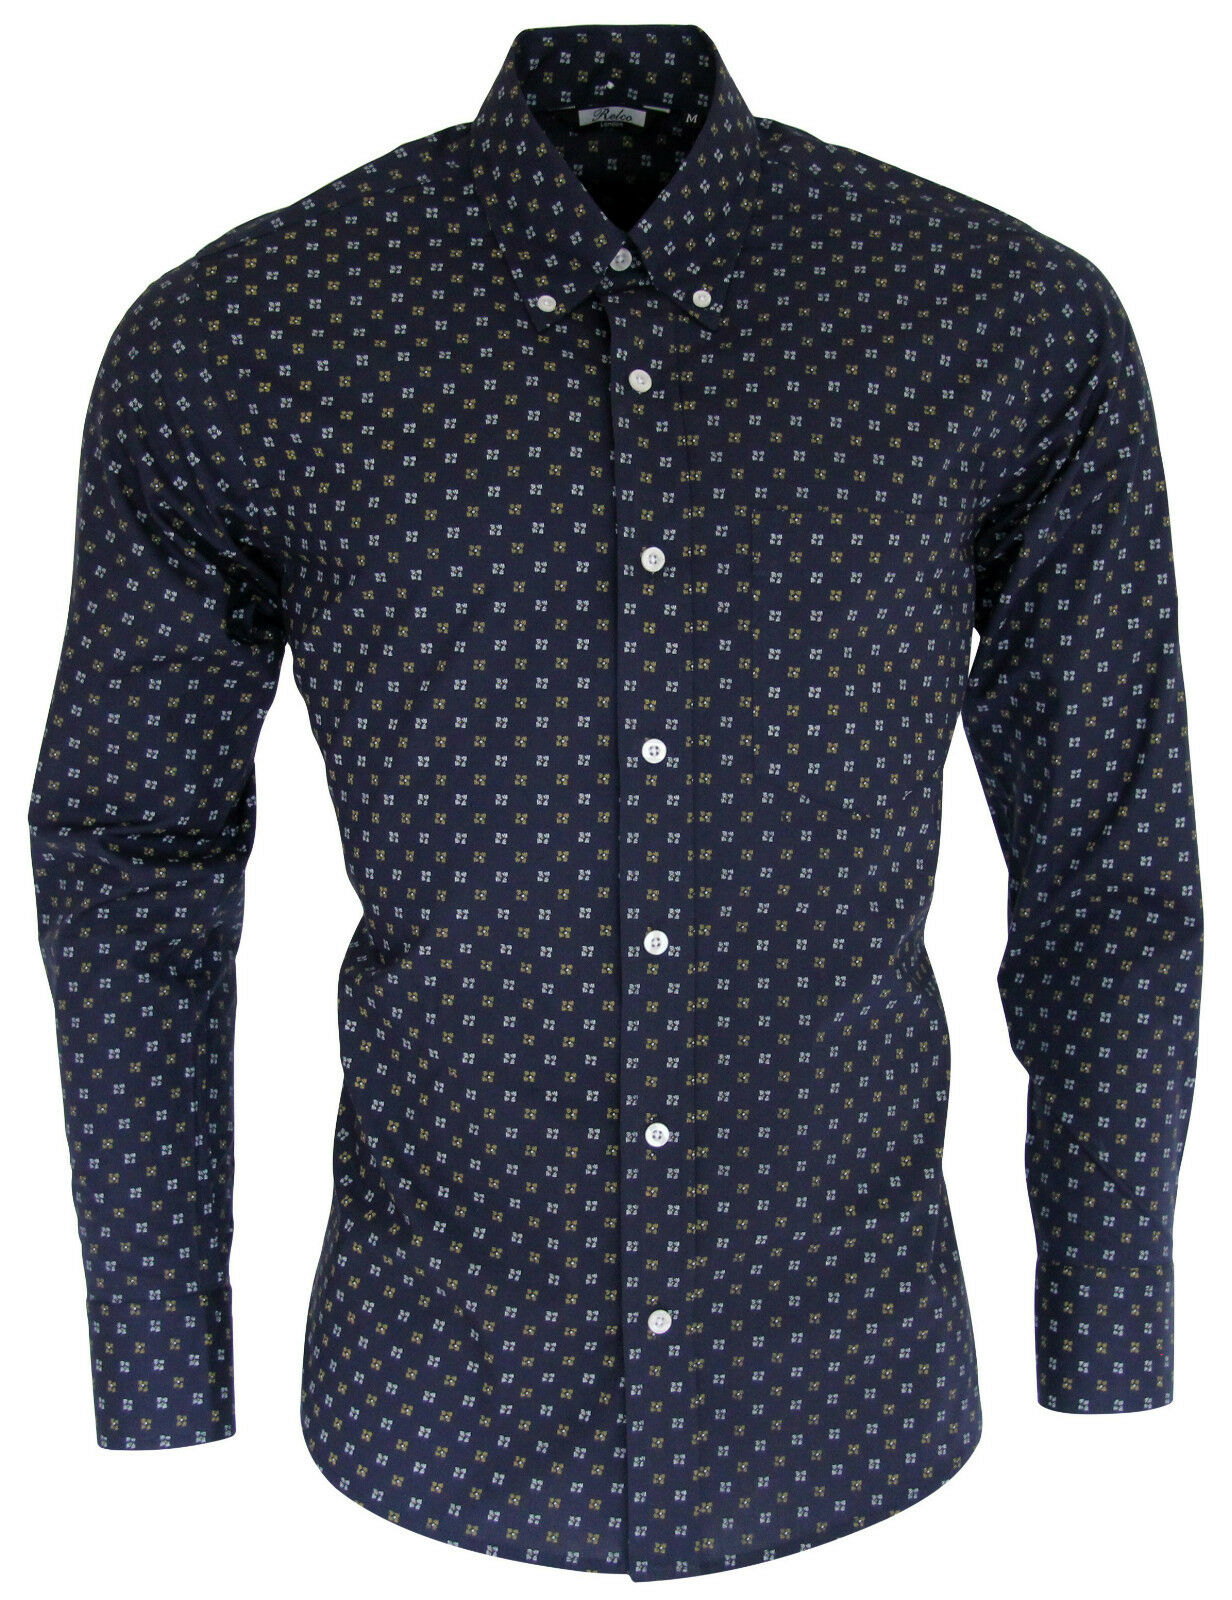 Relco Mens Navy Abstract Patterned Long Sleeved Button Down Vintage Shirt Retro